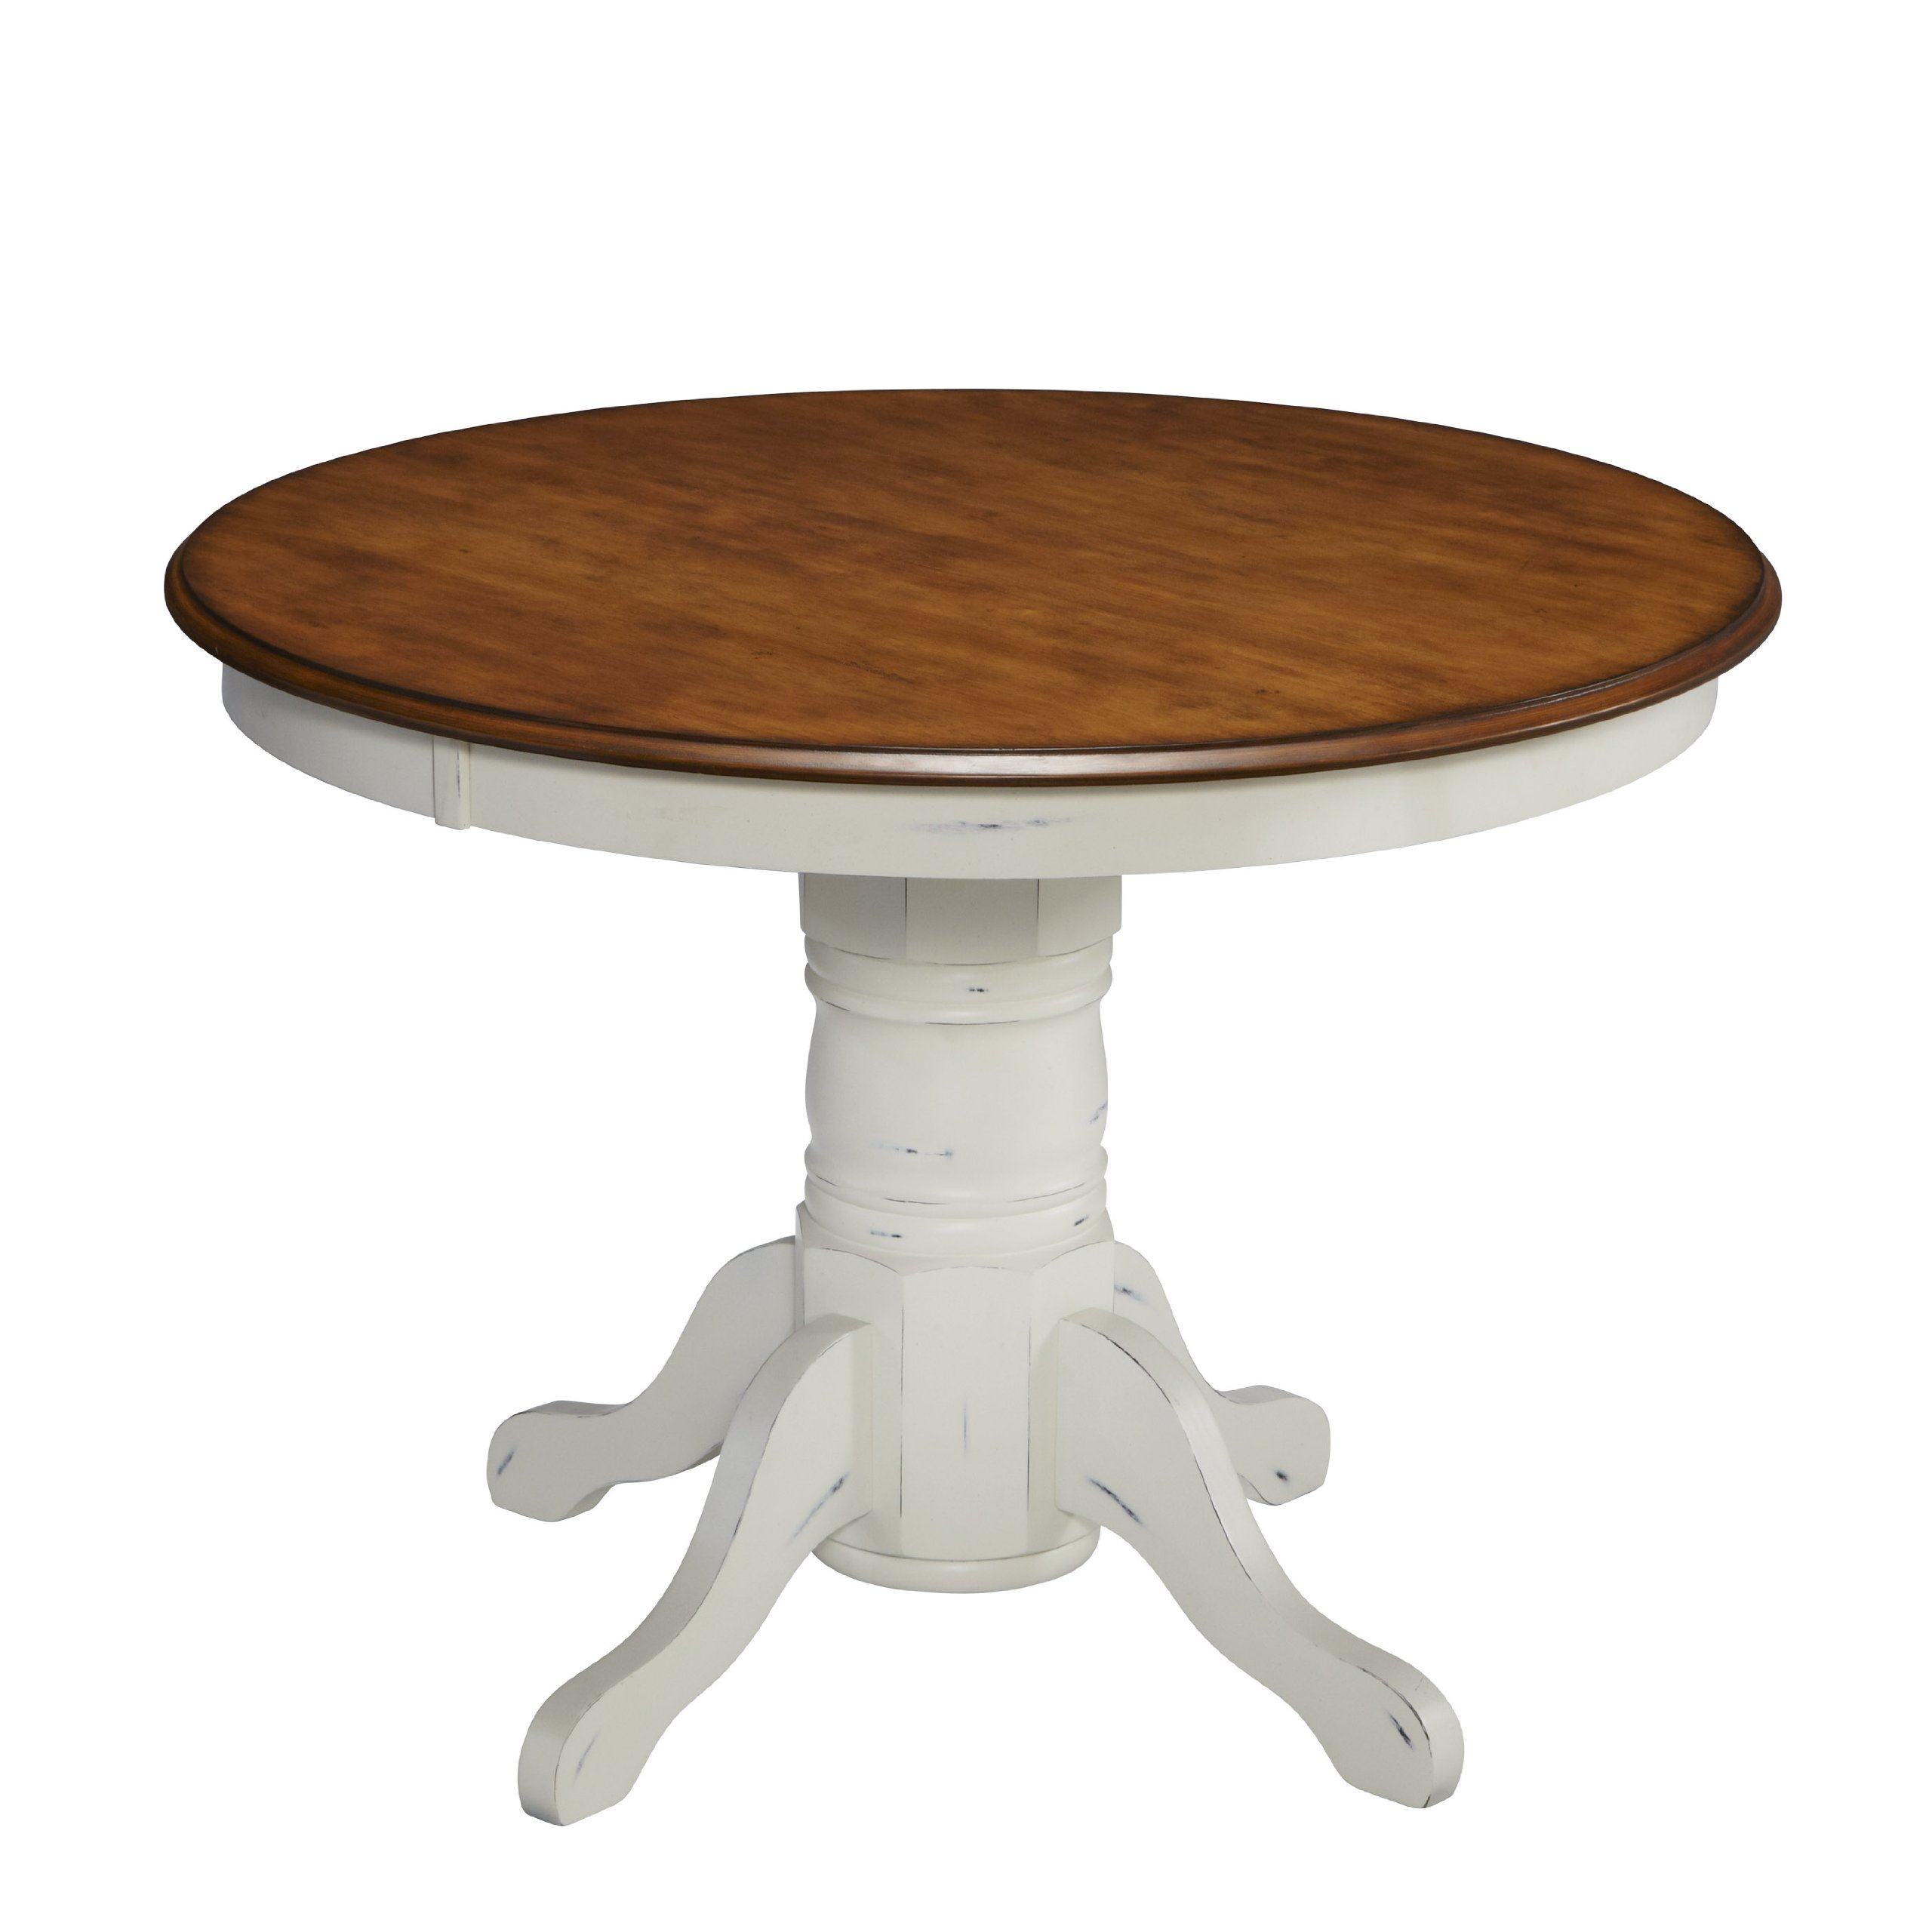 French Countryside Oak/ White 42'' Round Pedestal Table by Home Styles by Home Styles